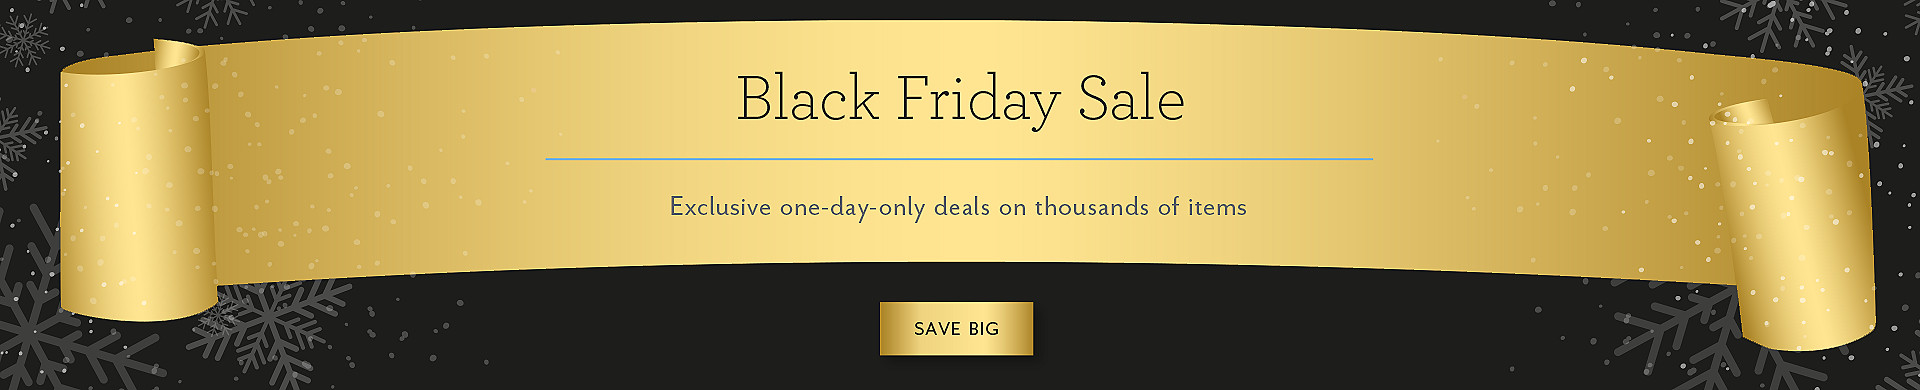 2015-11-27 | Black Friday Sale Homepage Banner